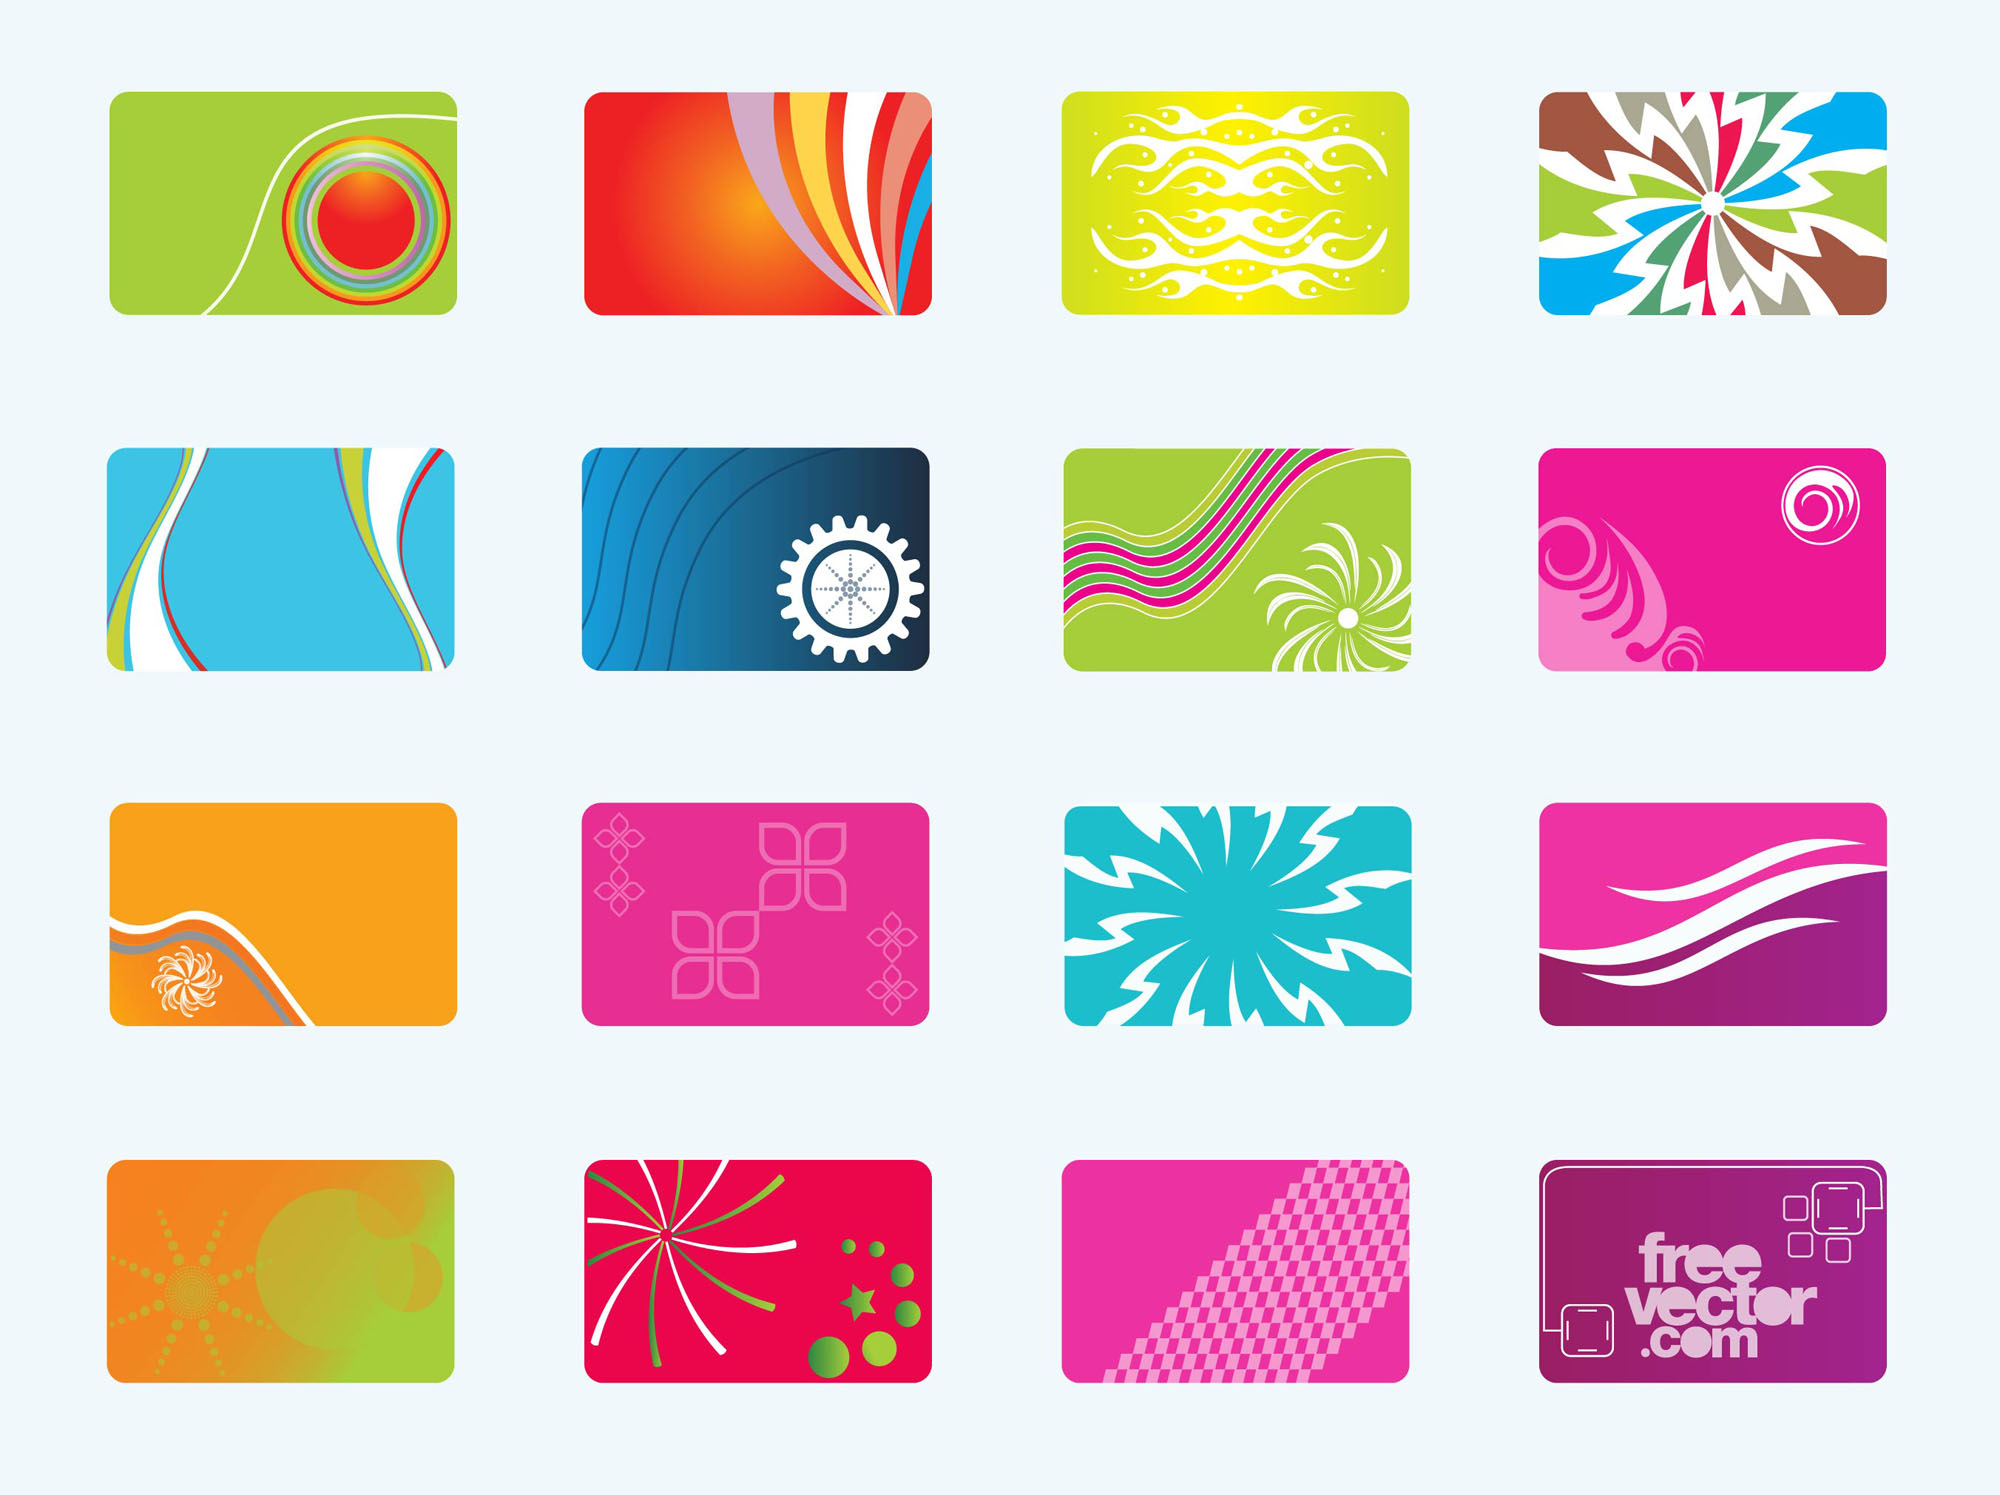 12 symbol free vector business card images free contact